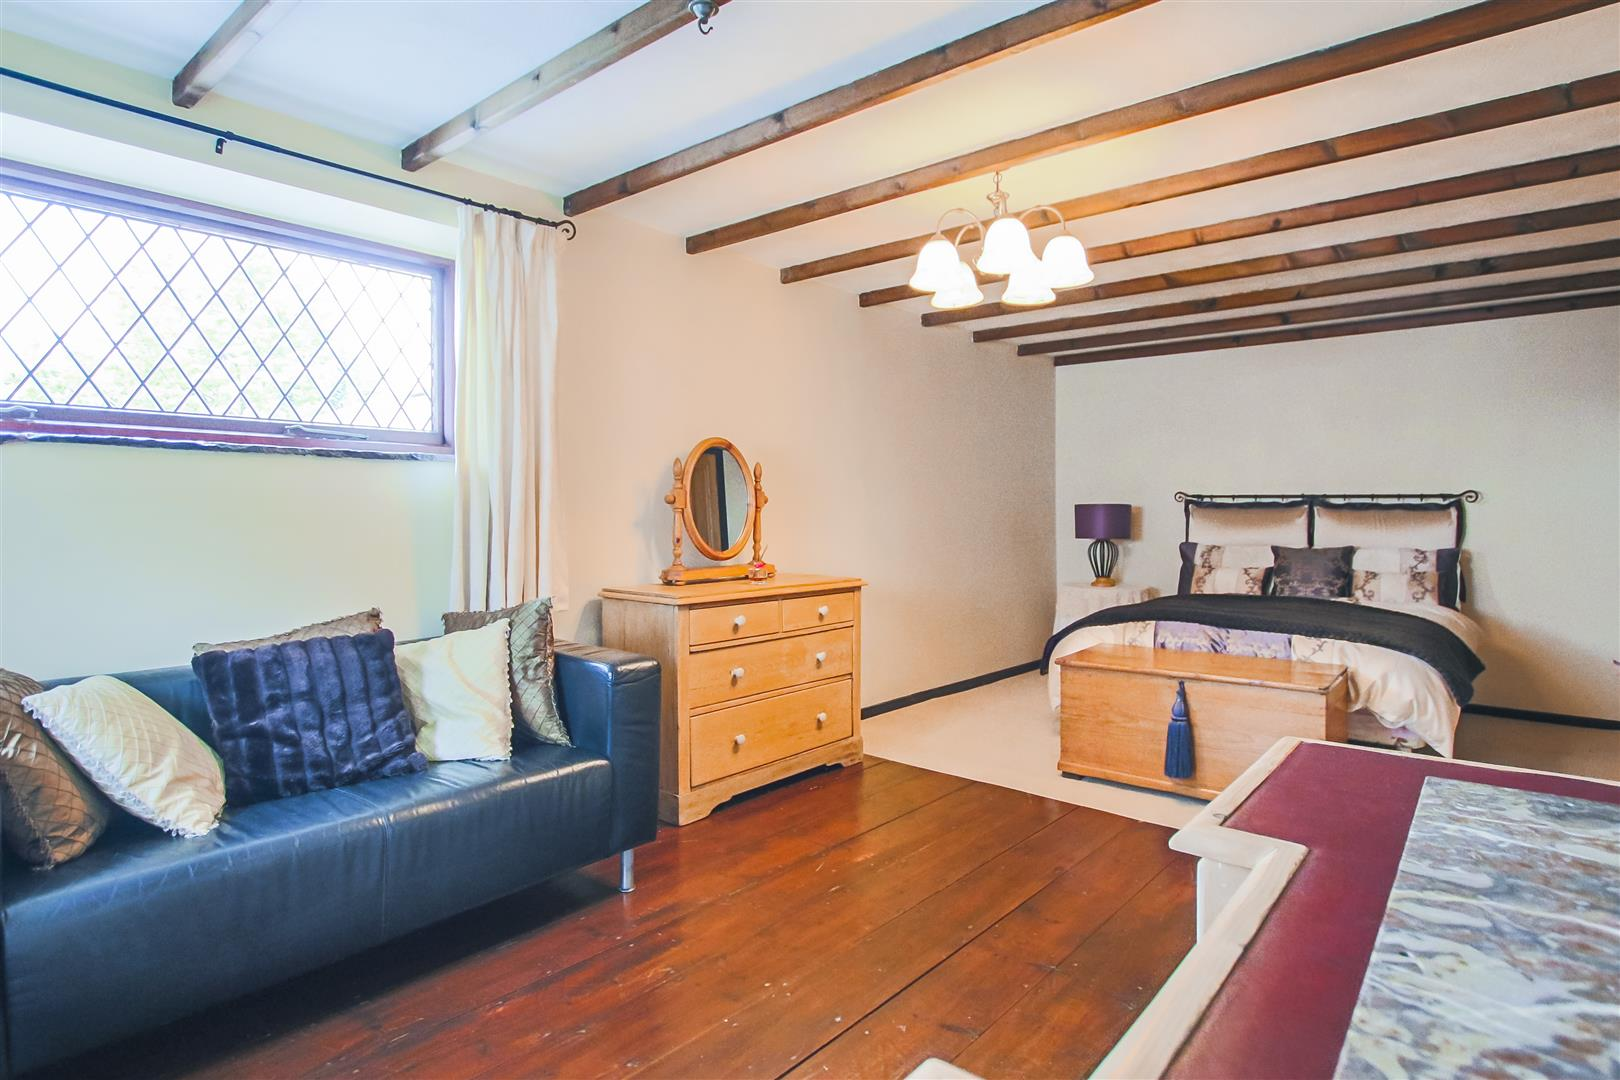 5 Bedroom Barn Conversion For Sale - Image 44